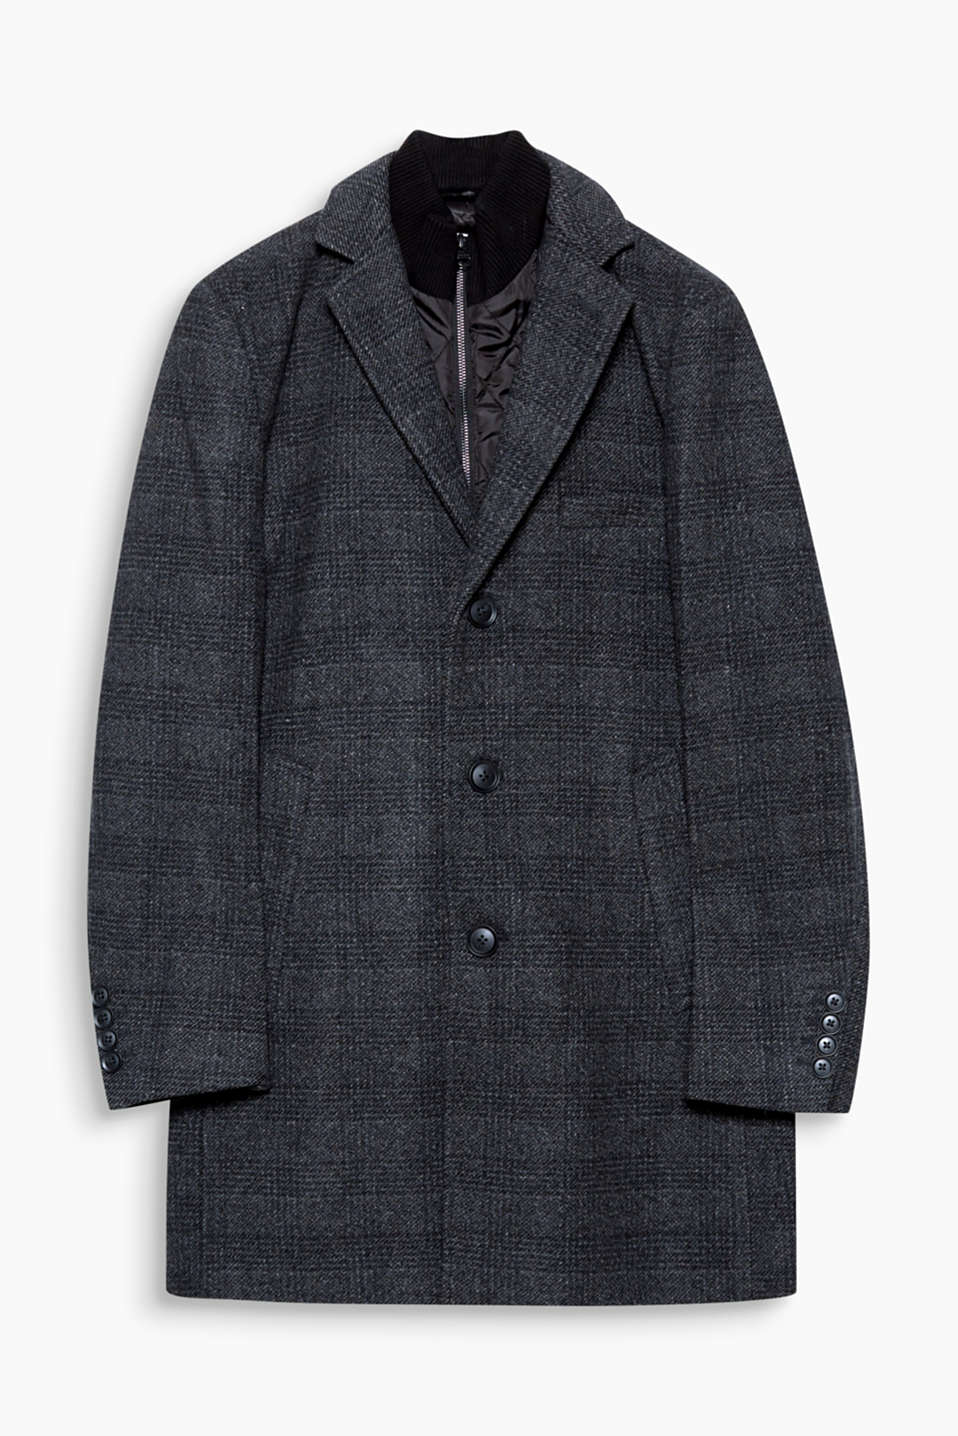 Get through the cold season with this checked coat in exquisite blended wool! The quilted insert will stop you freezing.